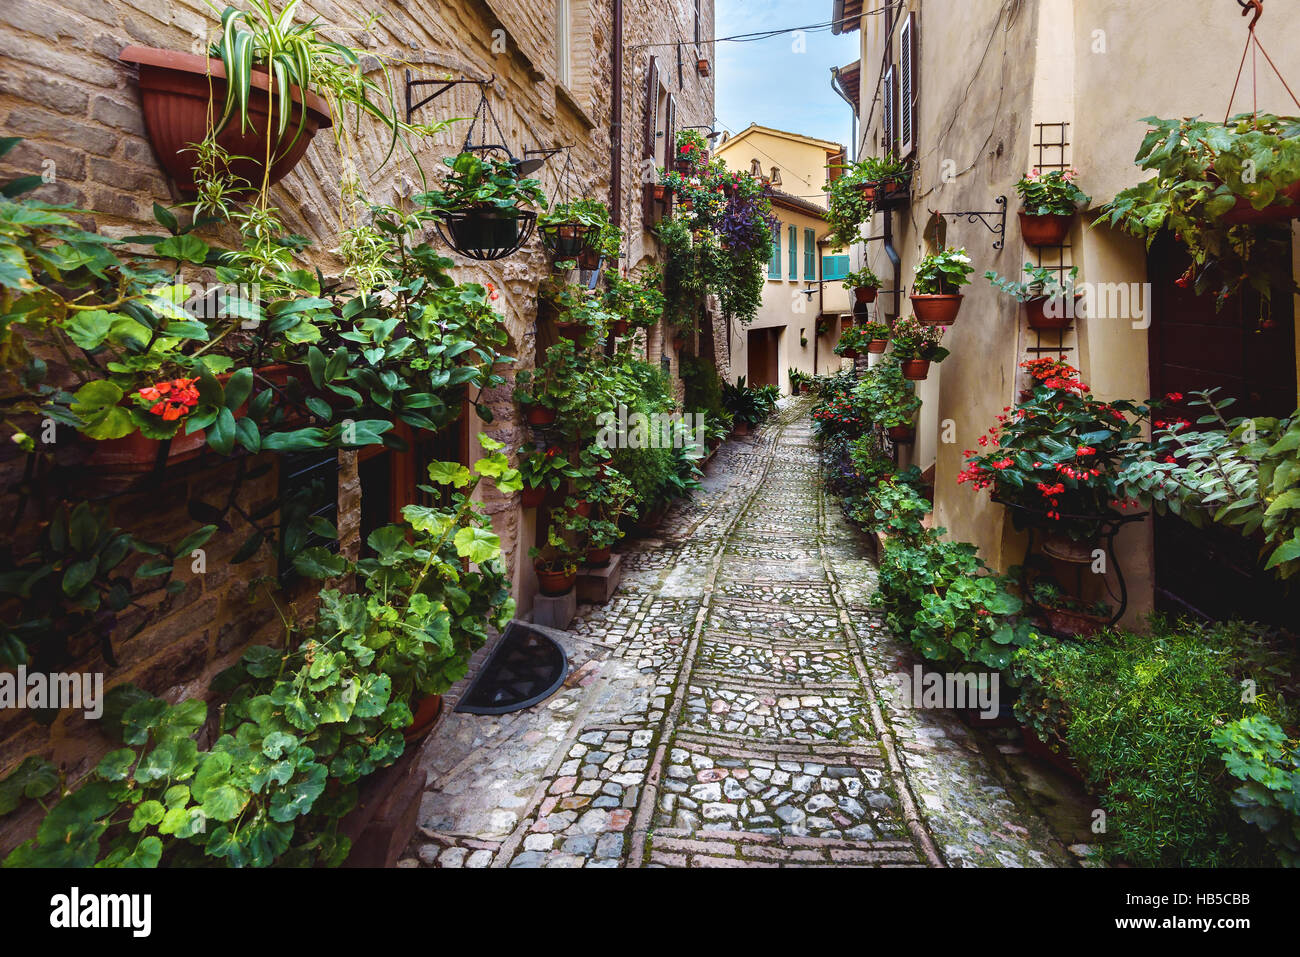 Surprising appearance of streets full of flowers in Spello, Umbria. - Stock Image